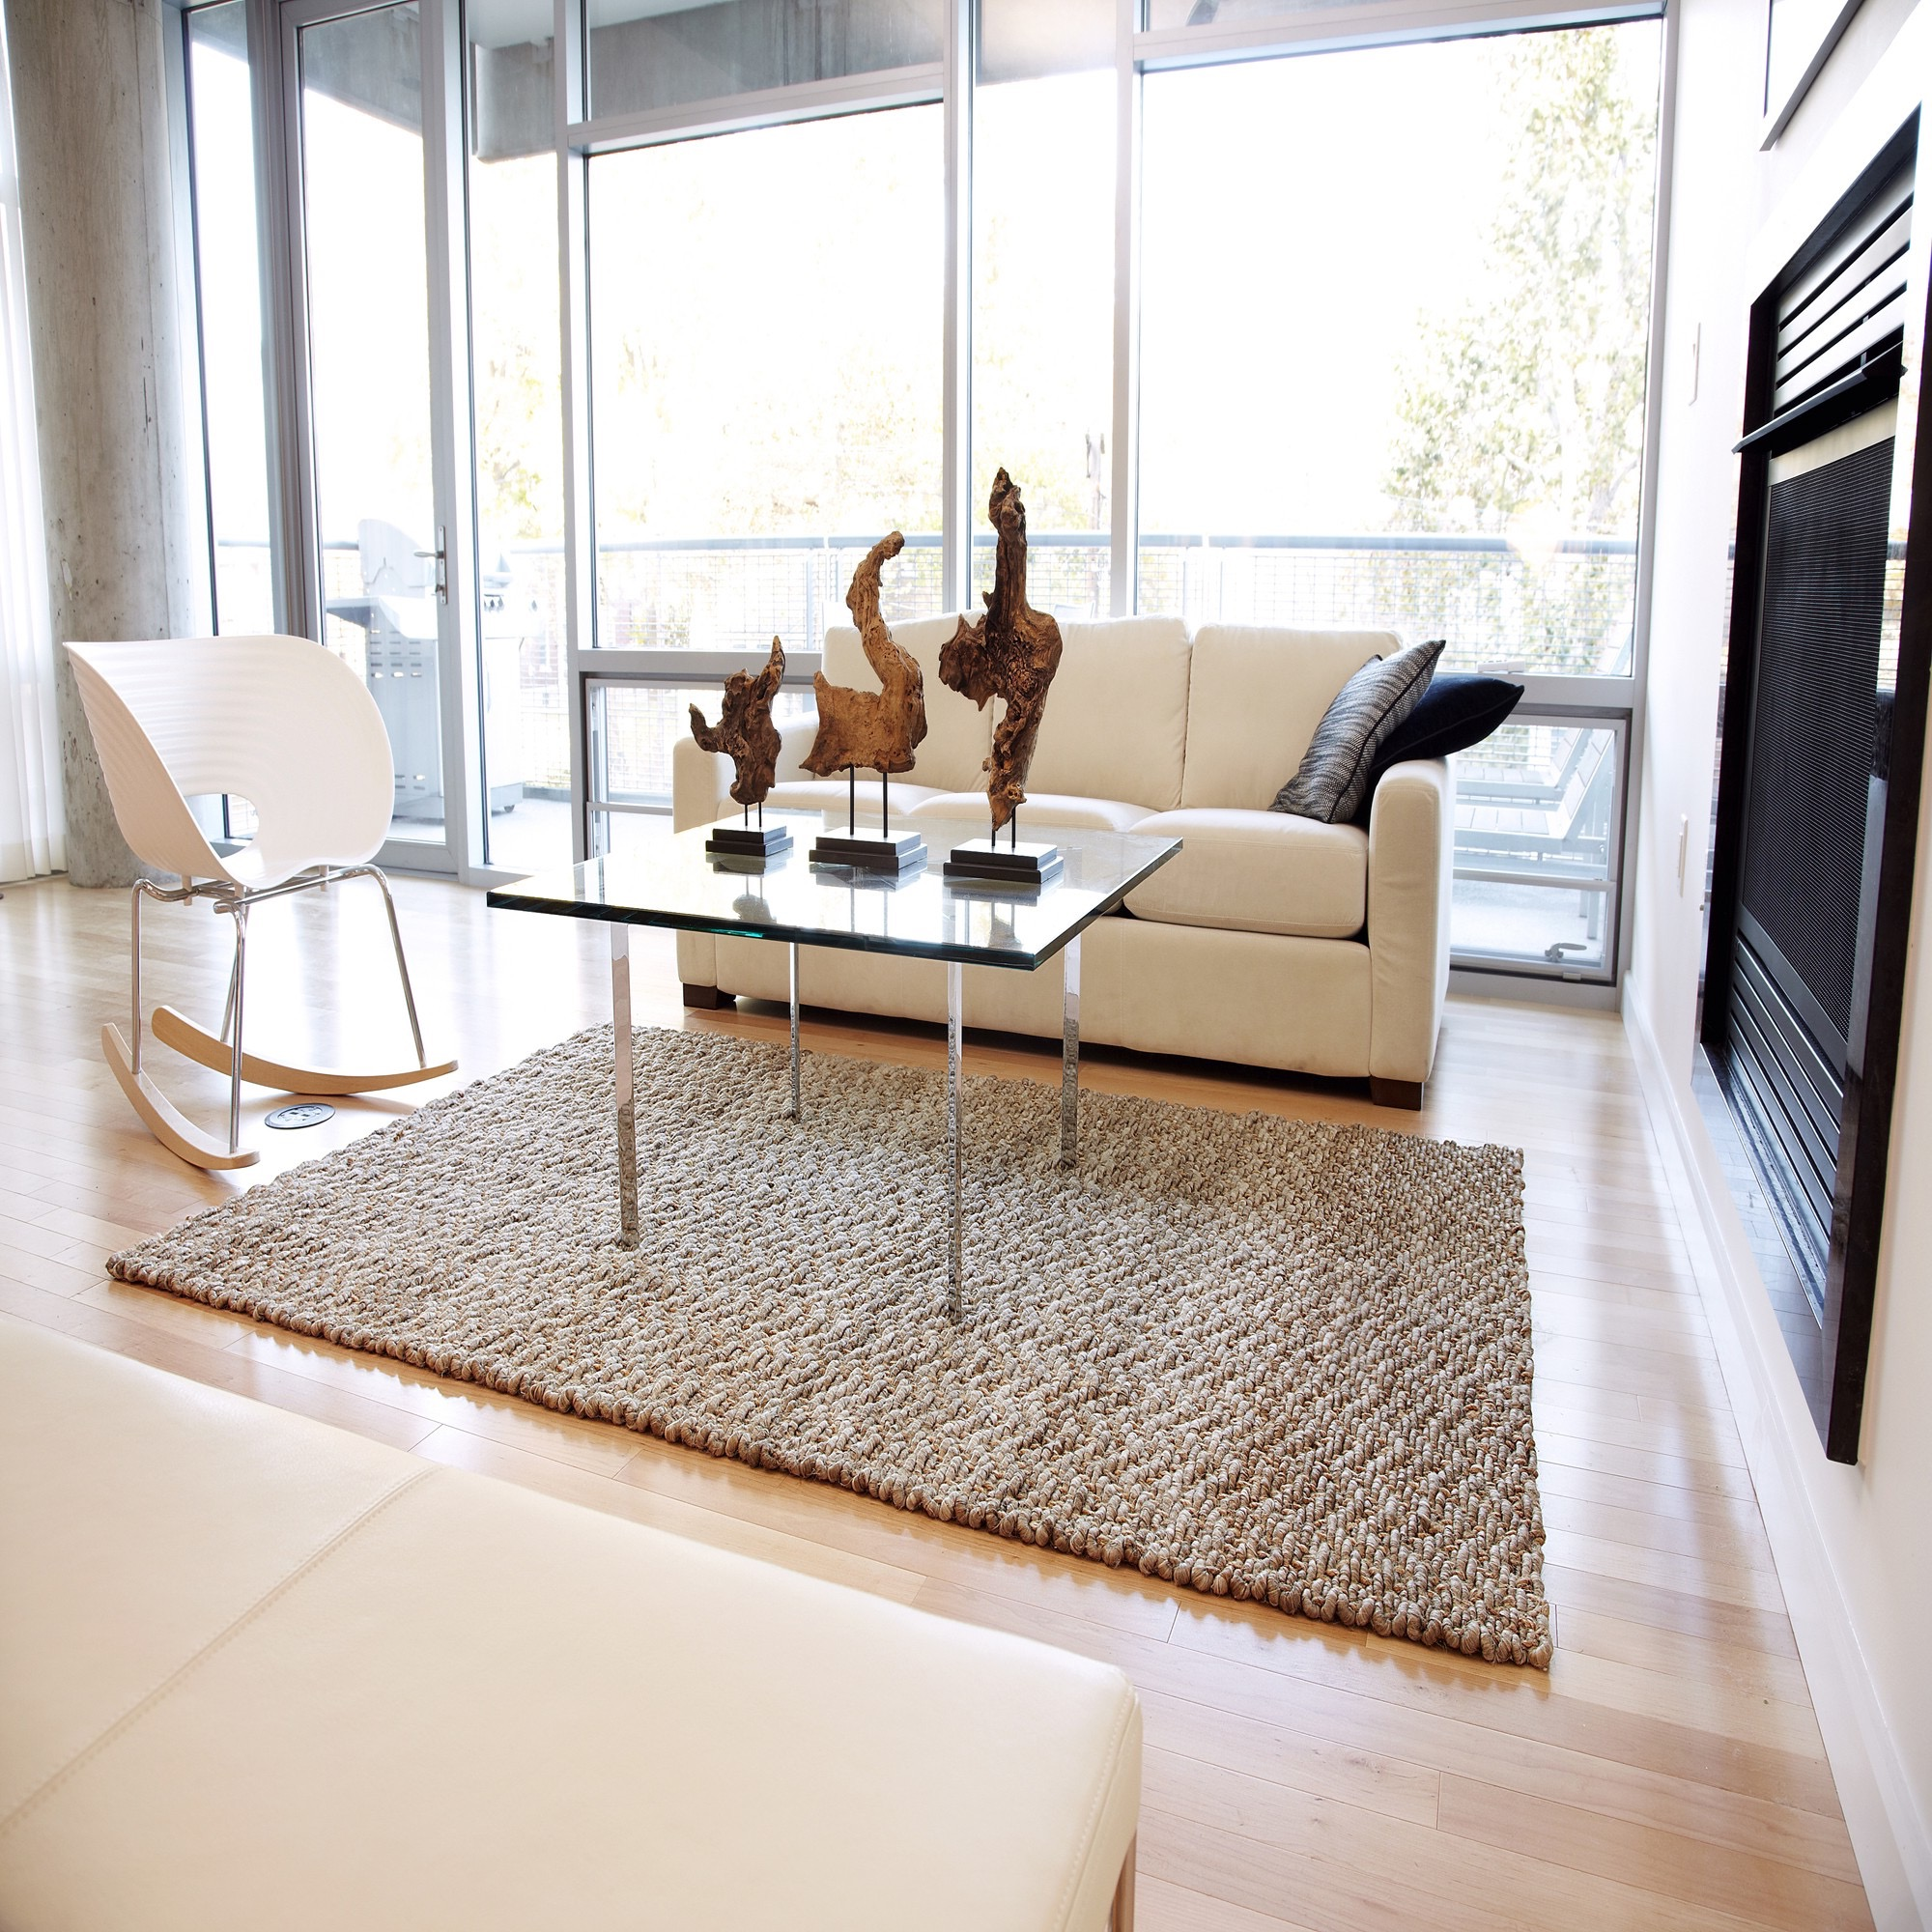 Featured Image of 15 Stunning Braided Rugs Decor Ideas